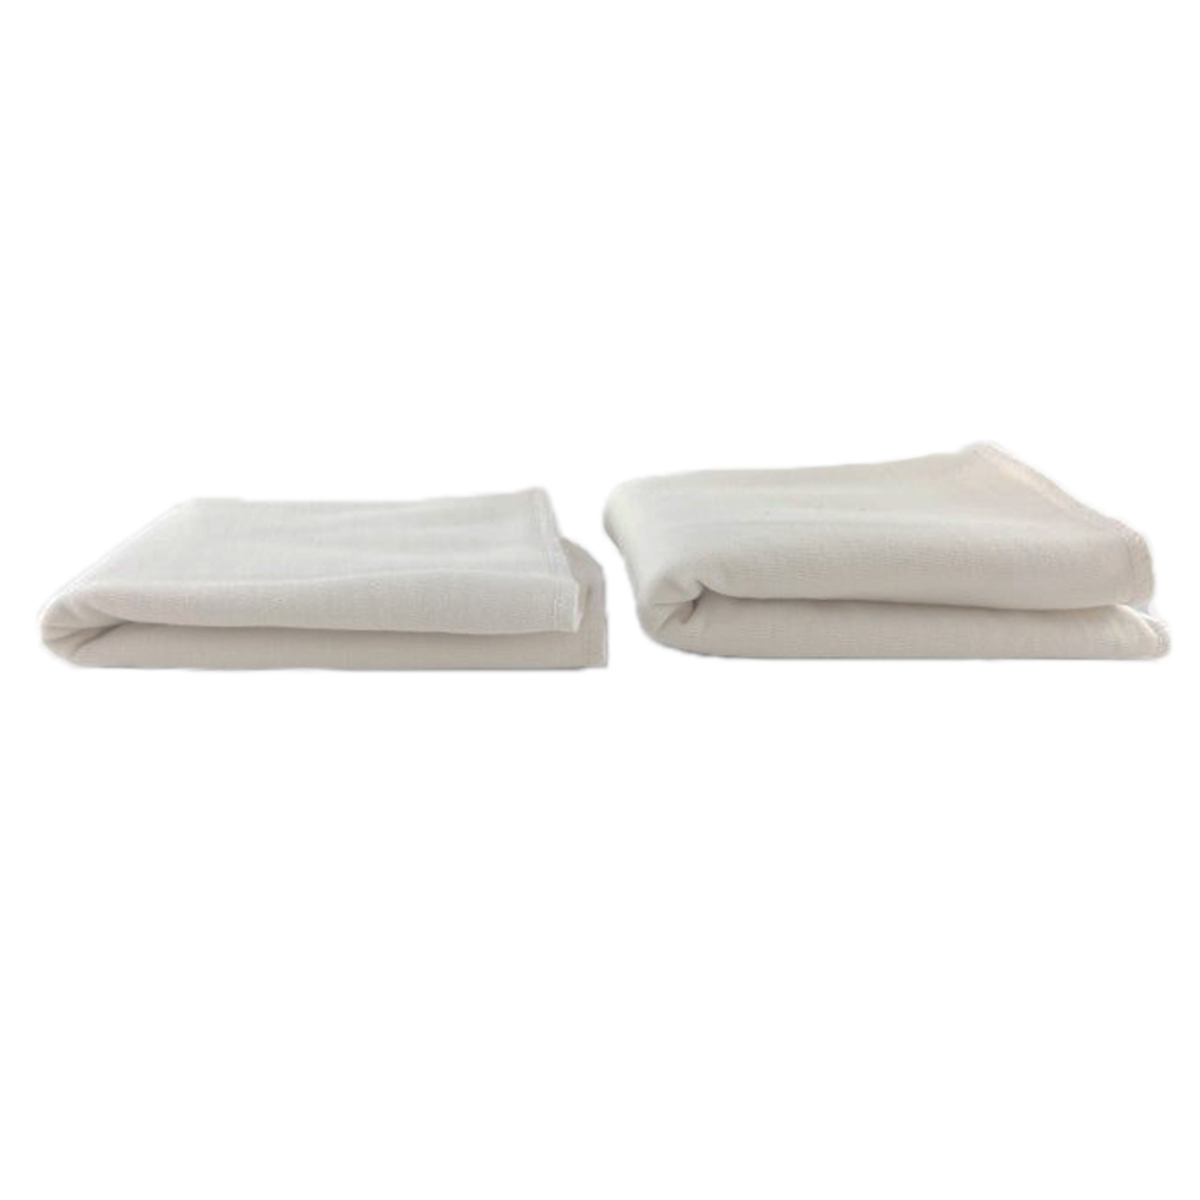 Couche En Coton Lot De 2 Absorbants Lavables En Coton Bio Taille 2